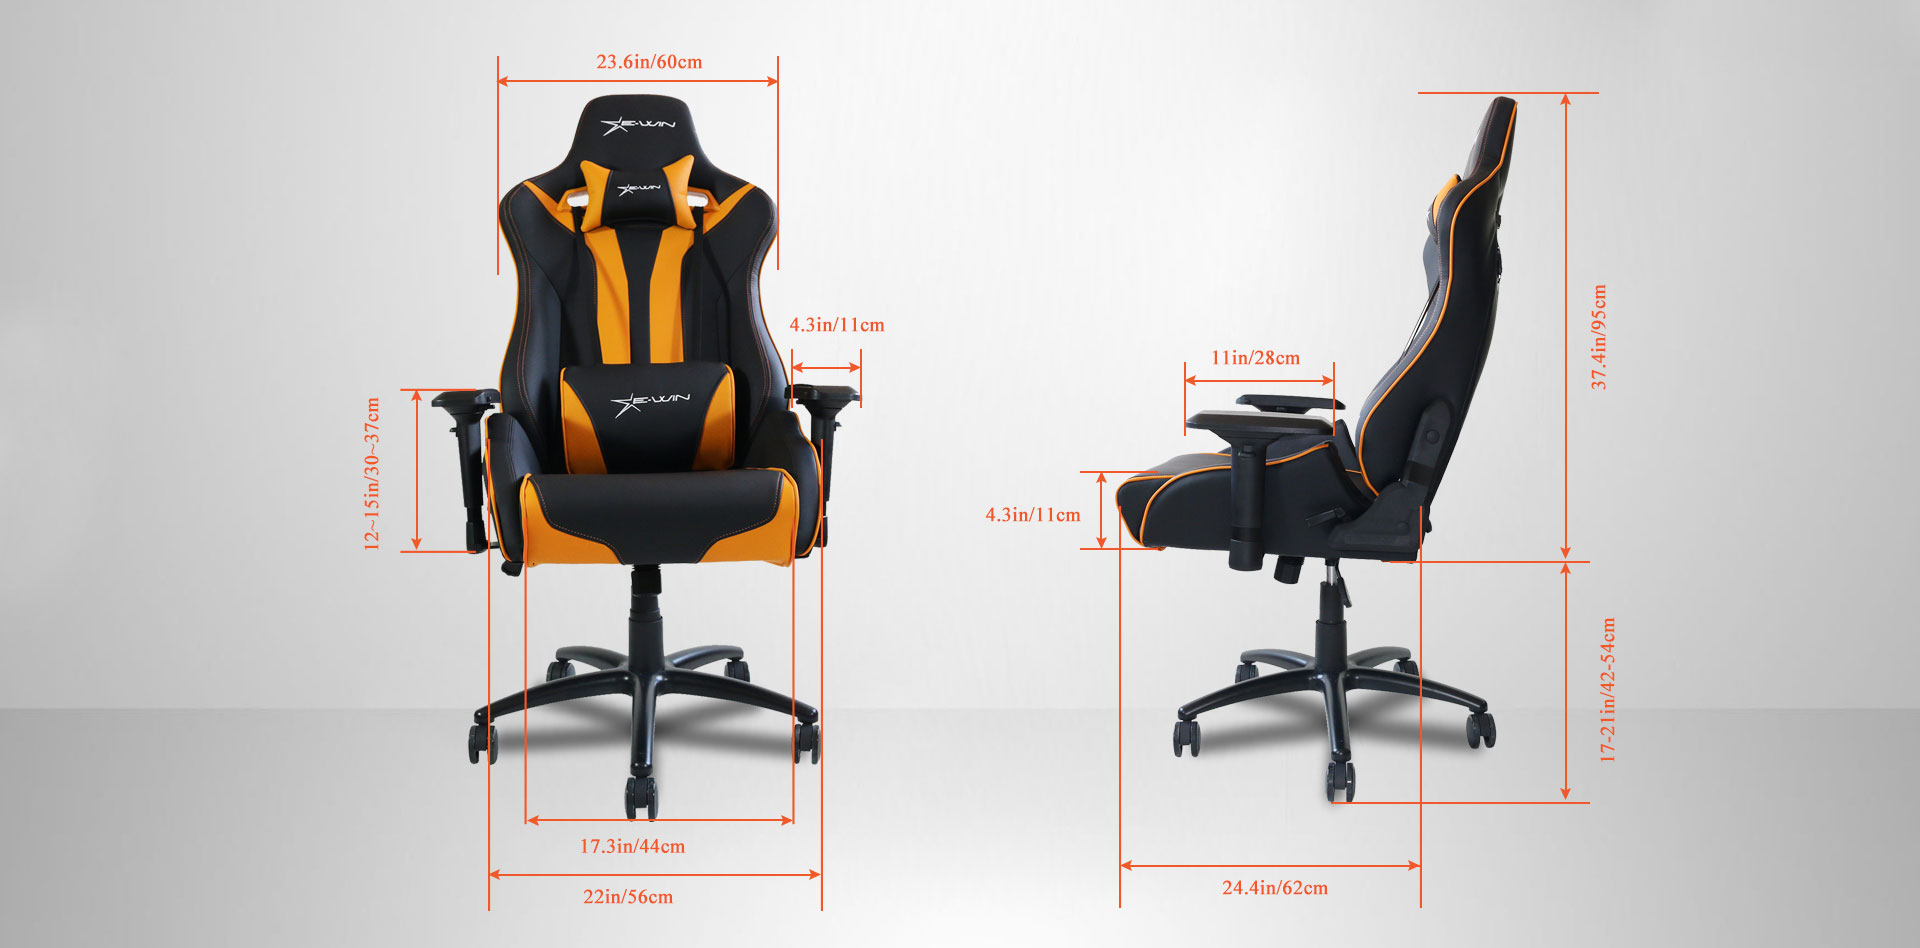 EwinRacing Flash XL Gaming Chairs Dimensions